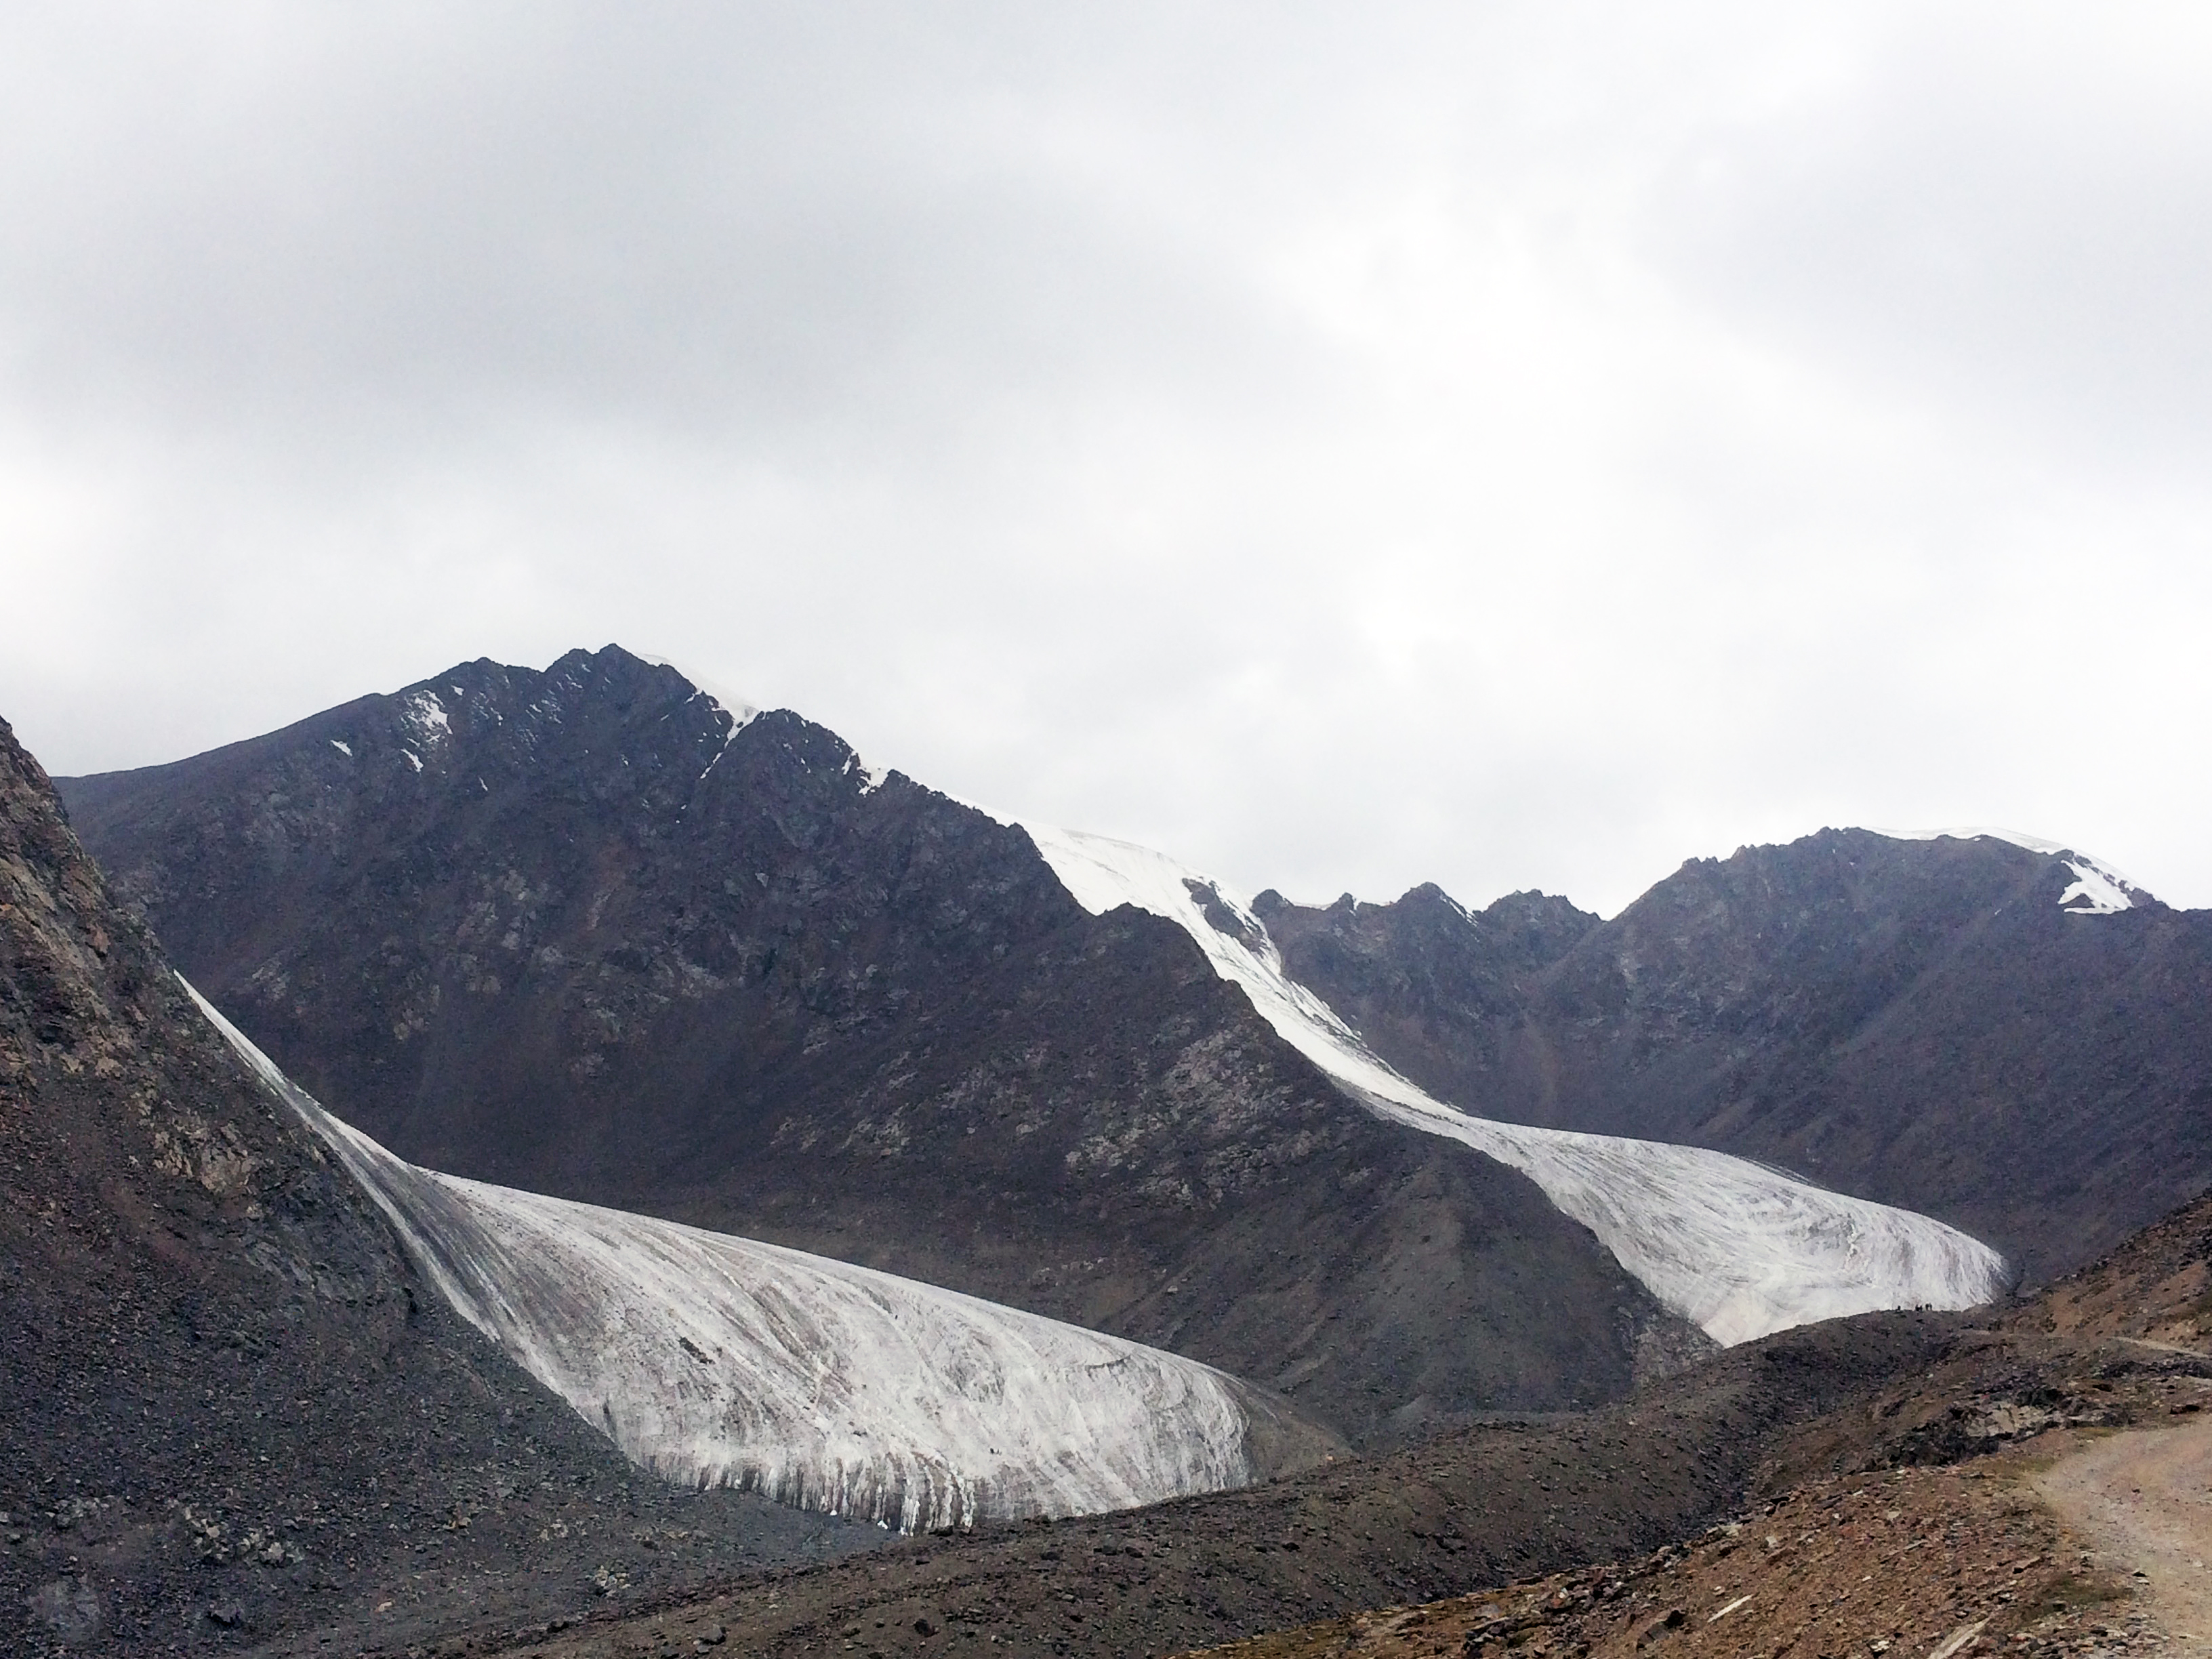 Urumqi Glacier No. 1 in August 2015 (taken by Huilin Li on 28/08/2015)